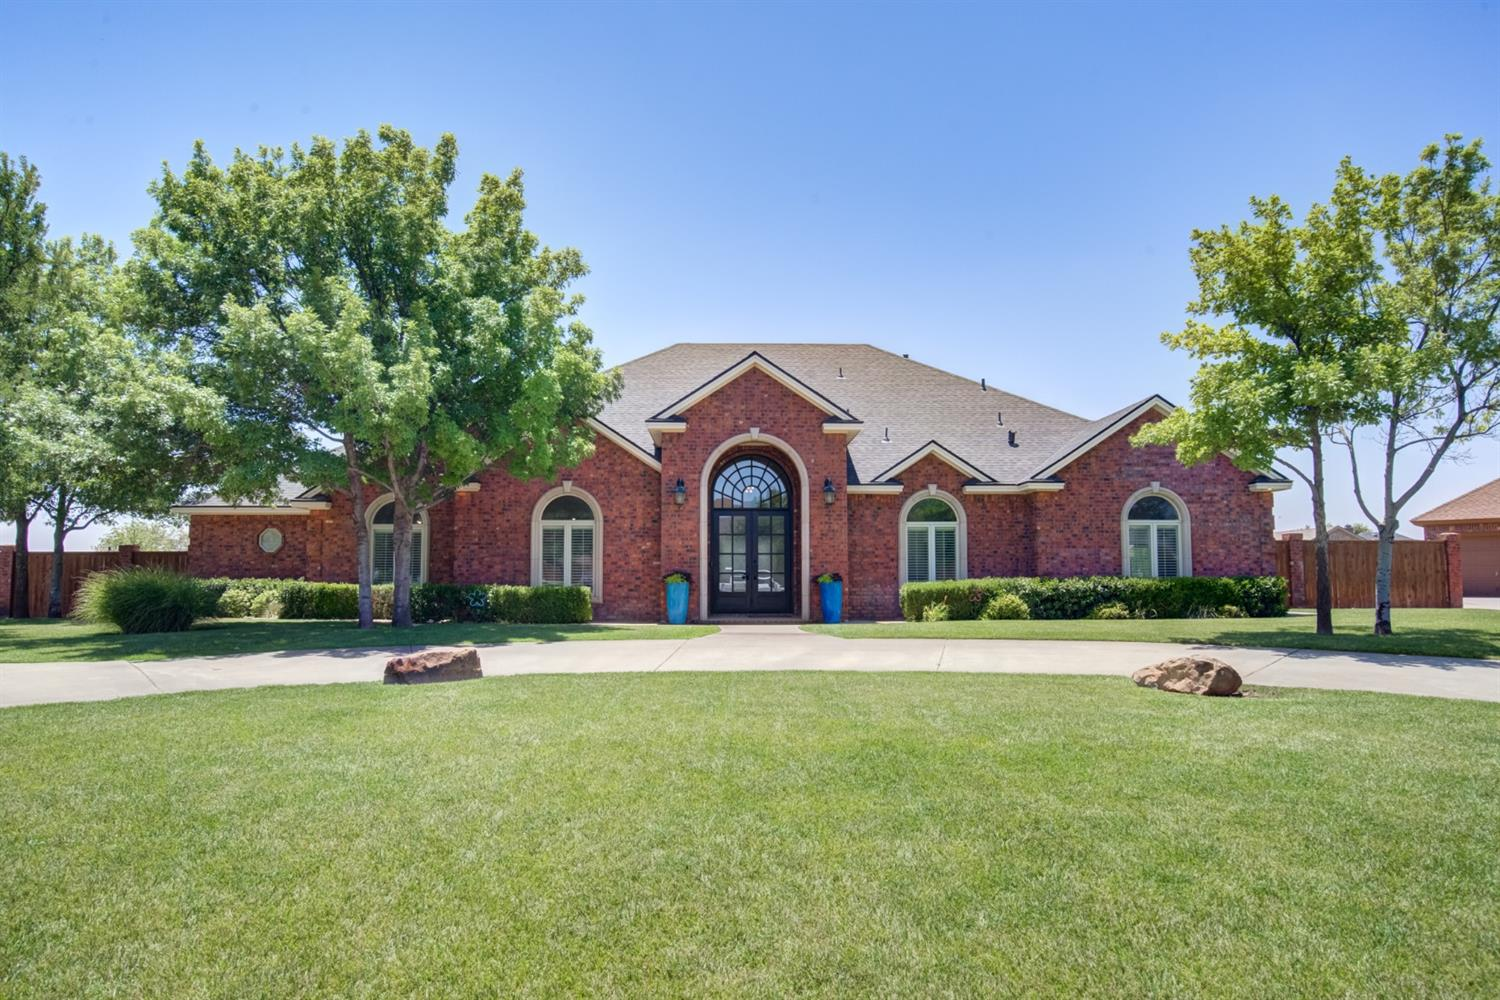 Just in time to get your family settled before Frenship ISD starts school in this beautiful home in Llano Estates. When you pull up into the circular driveway you will see pride of ownership. Enter thru the new 12ft iron door to see the open living room with 14 ft ceilings and corner brick fireplace. Perfect for entertaining, you will like the flow into the kitchen where you see a breakfast bar, island and plenty of granite counter space. Gas stove top, double ovens, microwave, ice maker, lots of cabinets and a huge pantry hidden by a cabinet door. Isolated master suite with large walk in closet, double sinks, separate tub and walk in shower. Other 2 bedrooms share a Jack and Jill bathroom with nice size closets. Basement perfect for movie night or gameroom with a separate closet with lock and key for indoor shop or safe room. Laundry room with lots of space and storage and a hidden access to the attic. 3 car garage, huge covered patio,  close to an acre of land. Plantation shutters!